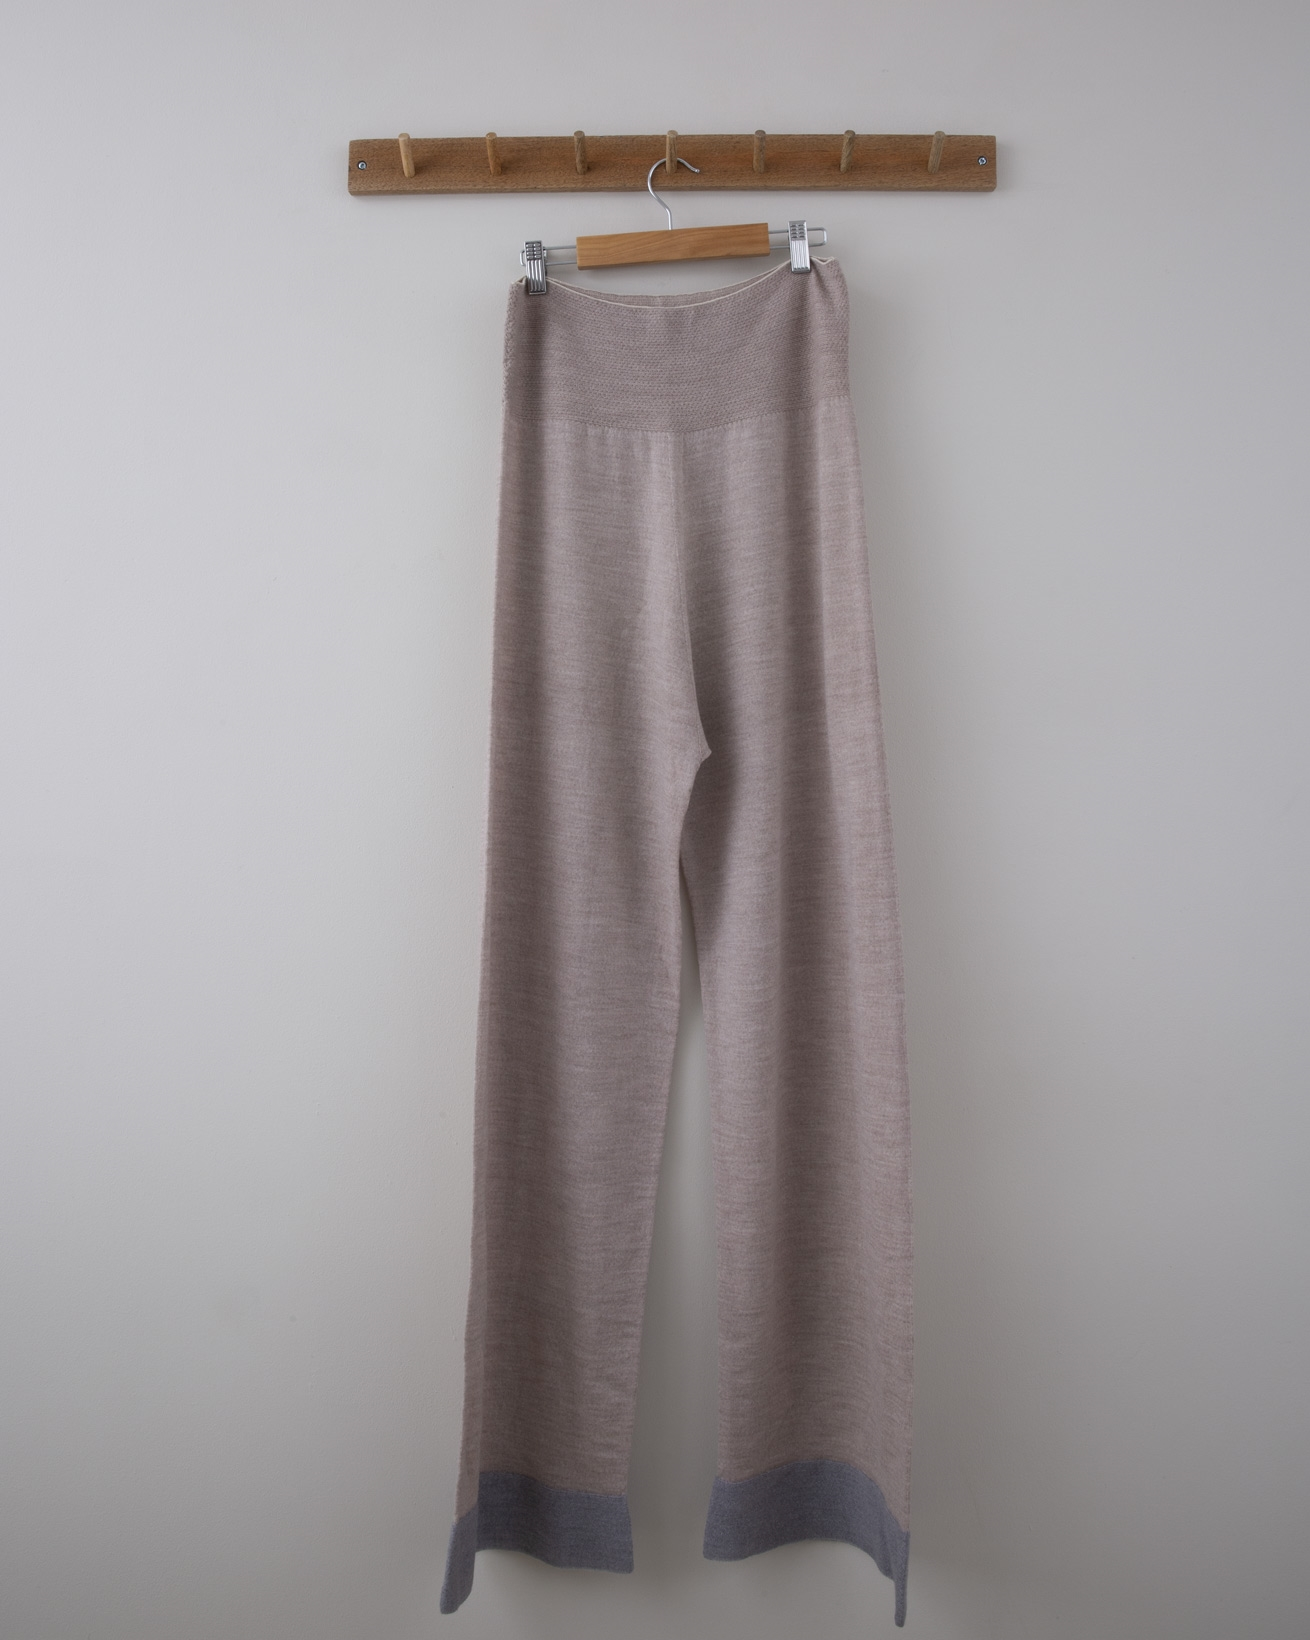 Wide Leg Merino Lounge Pant - Small - Pale Camel w/Grey Tipping - 1280